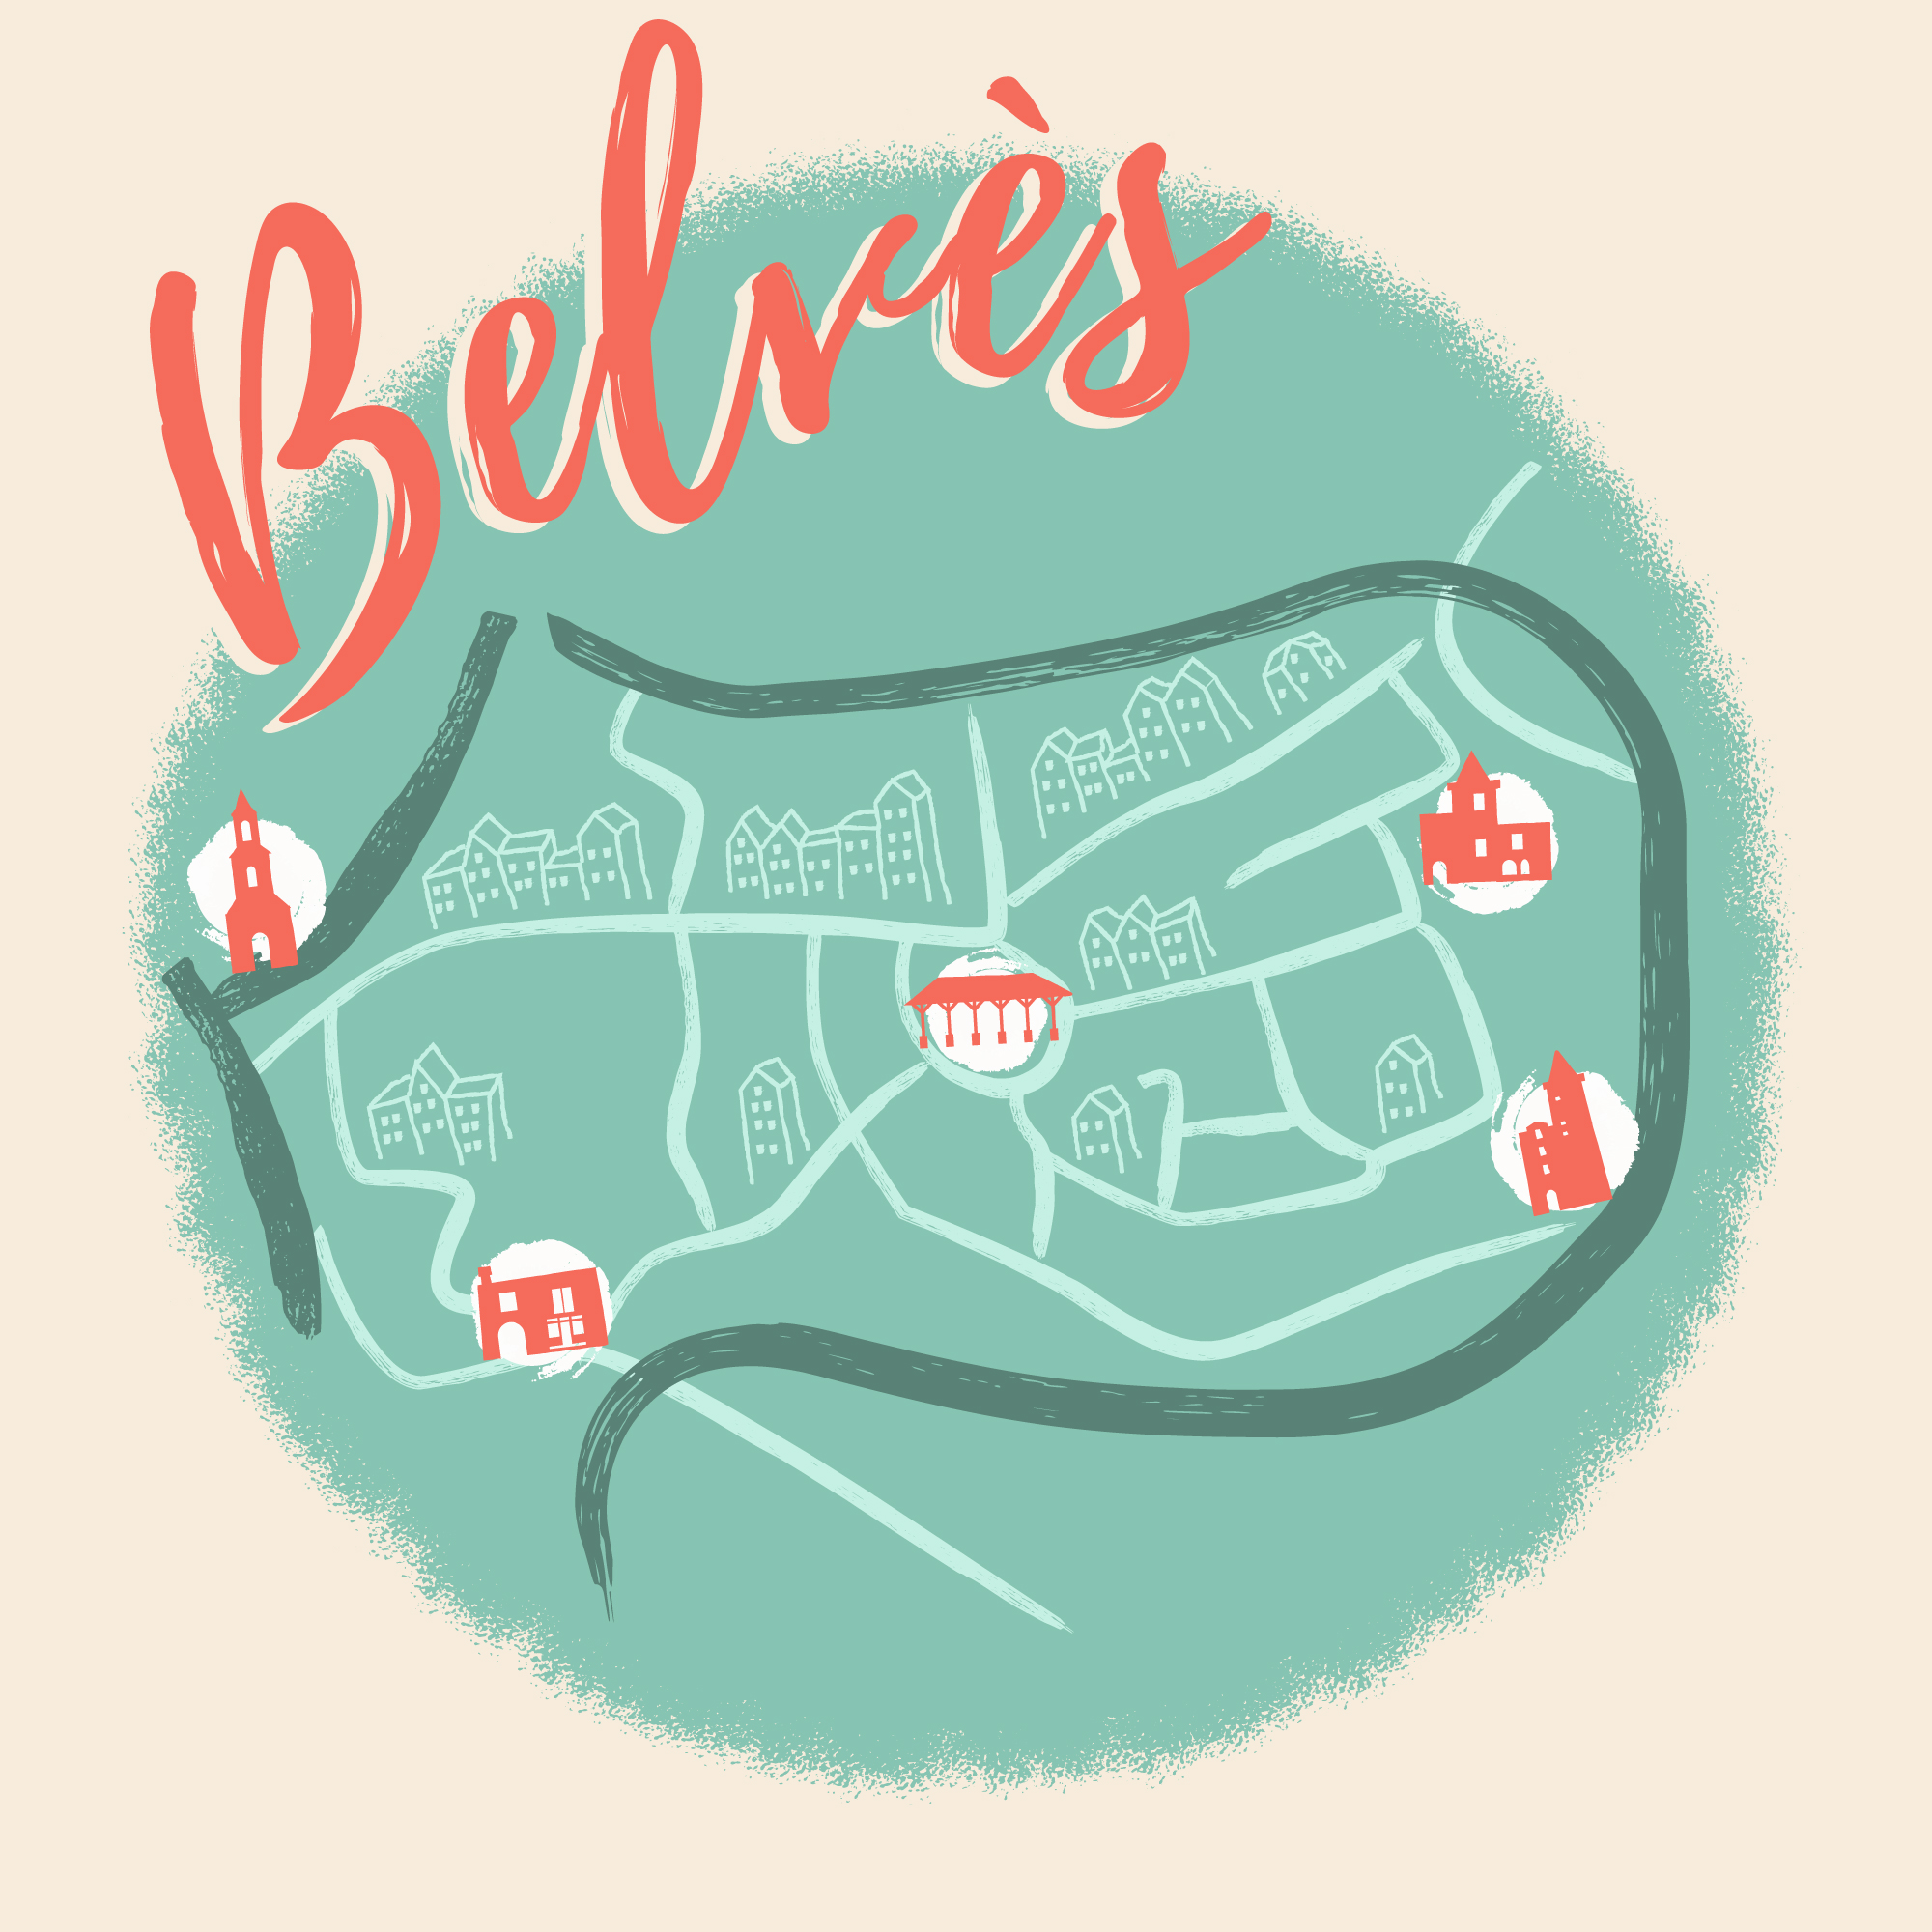 Illustrated city map of Belvès